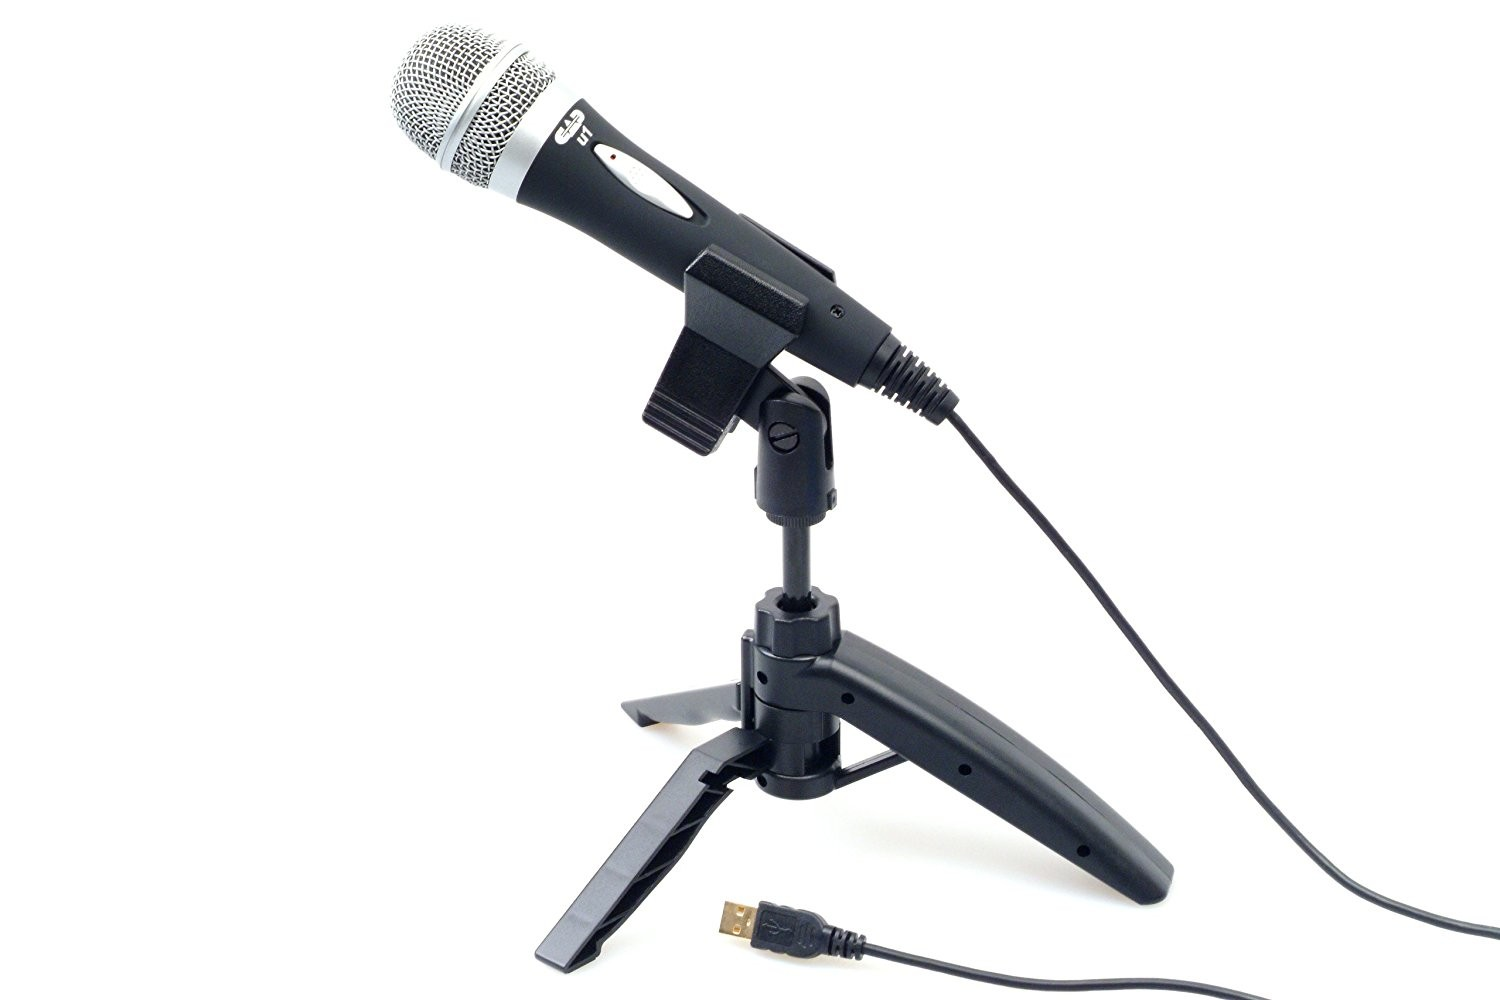 Cad U1 Usb Dynamic Recording Microphone Rs. 799 - Amazon